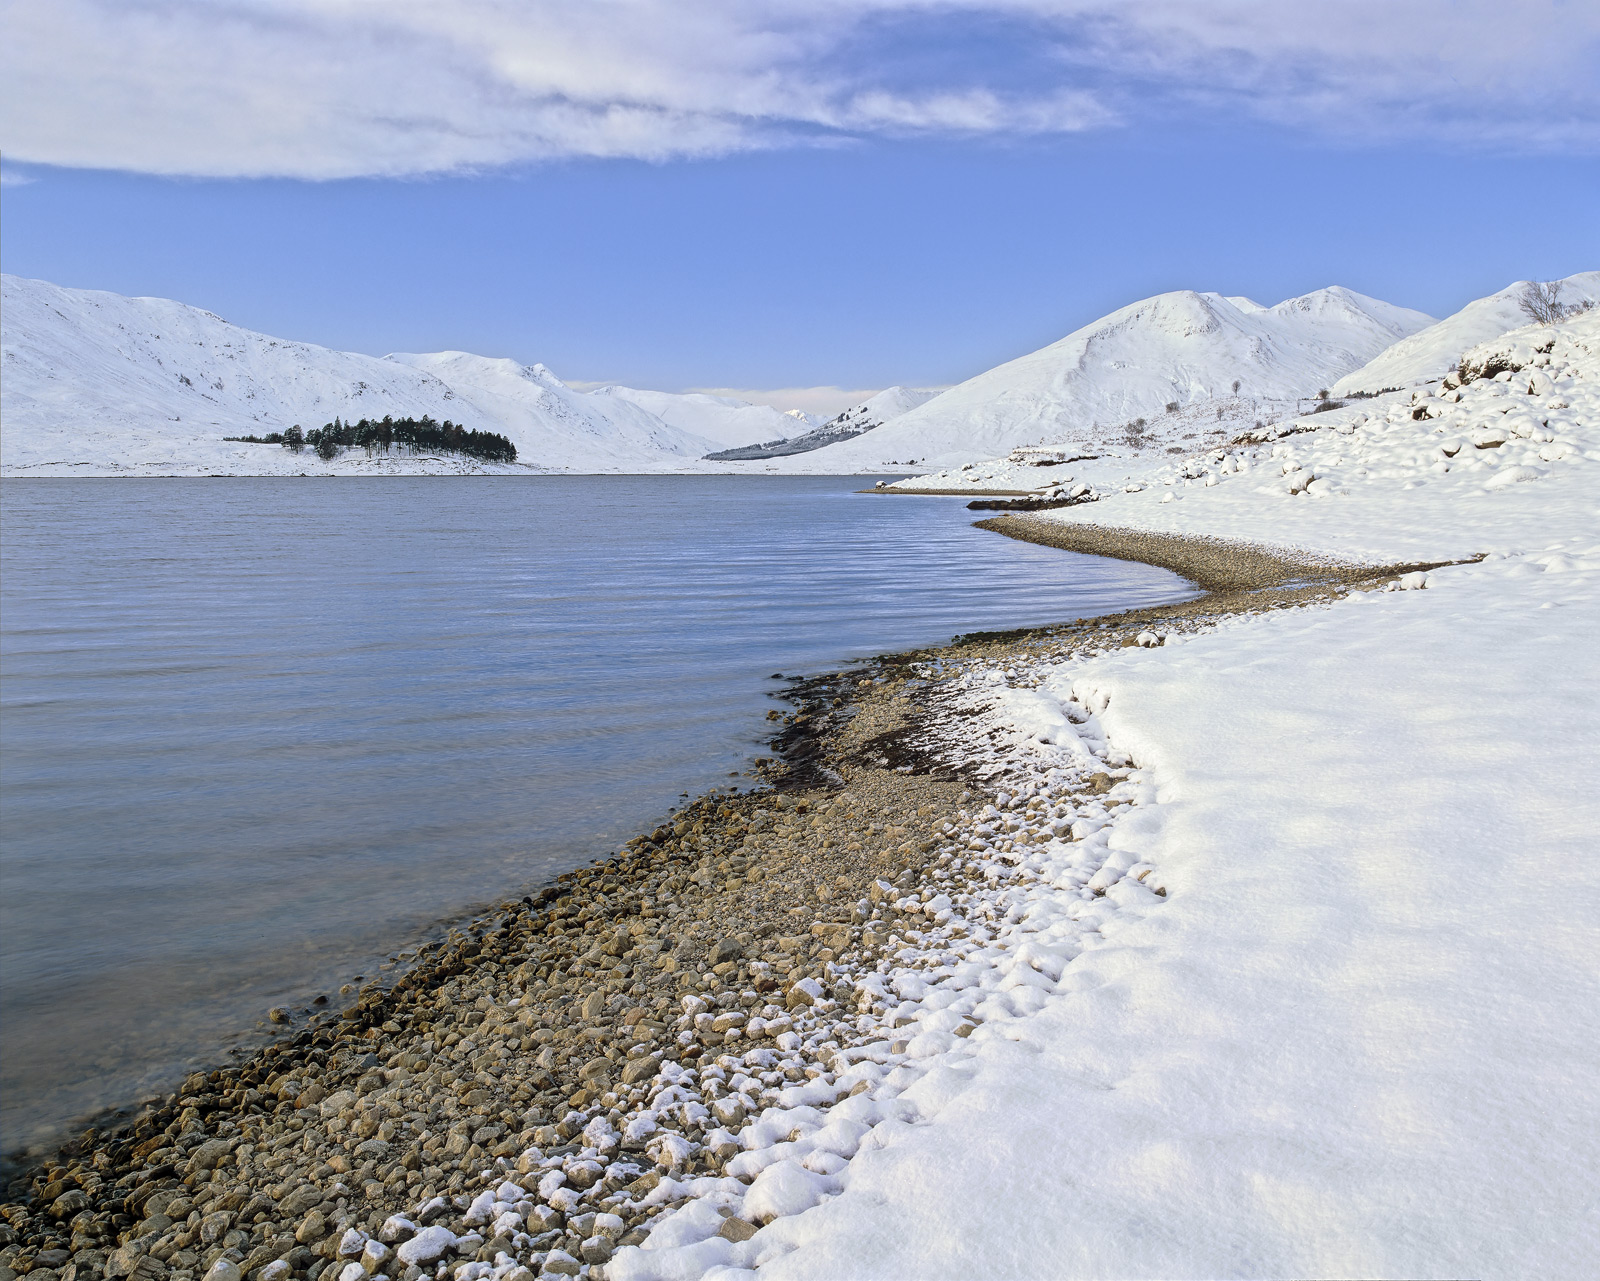 An astoundingly beautiful morning at Loch Cluanie and a pristine wilderness scene. I was delighted to find the snow completely...